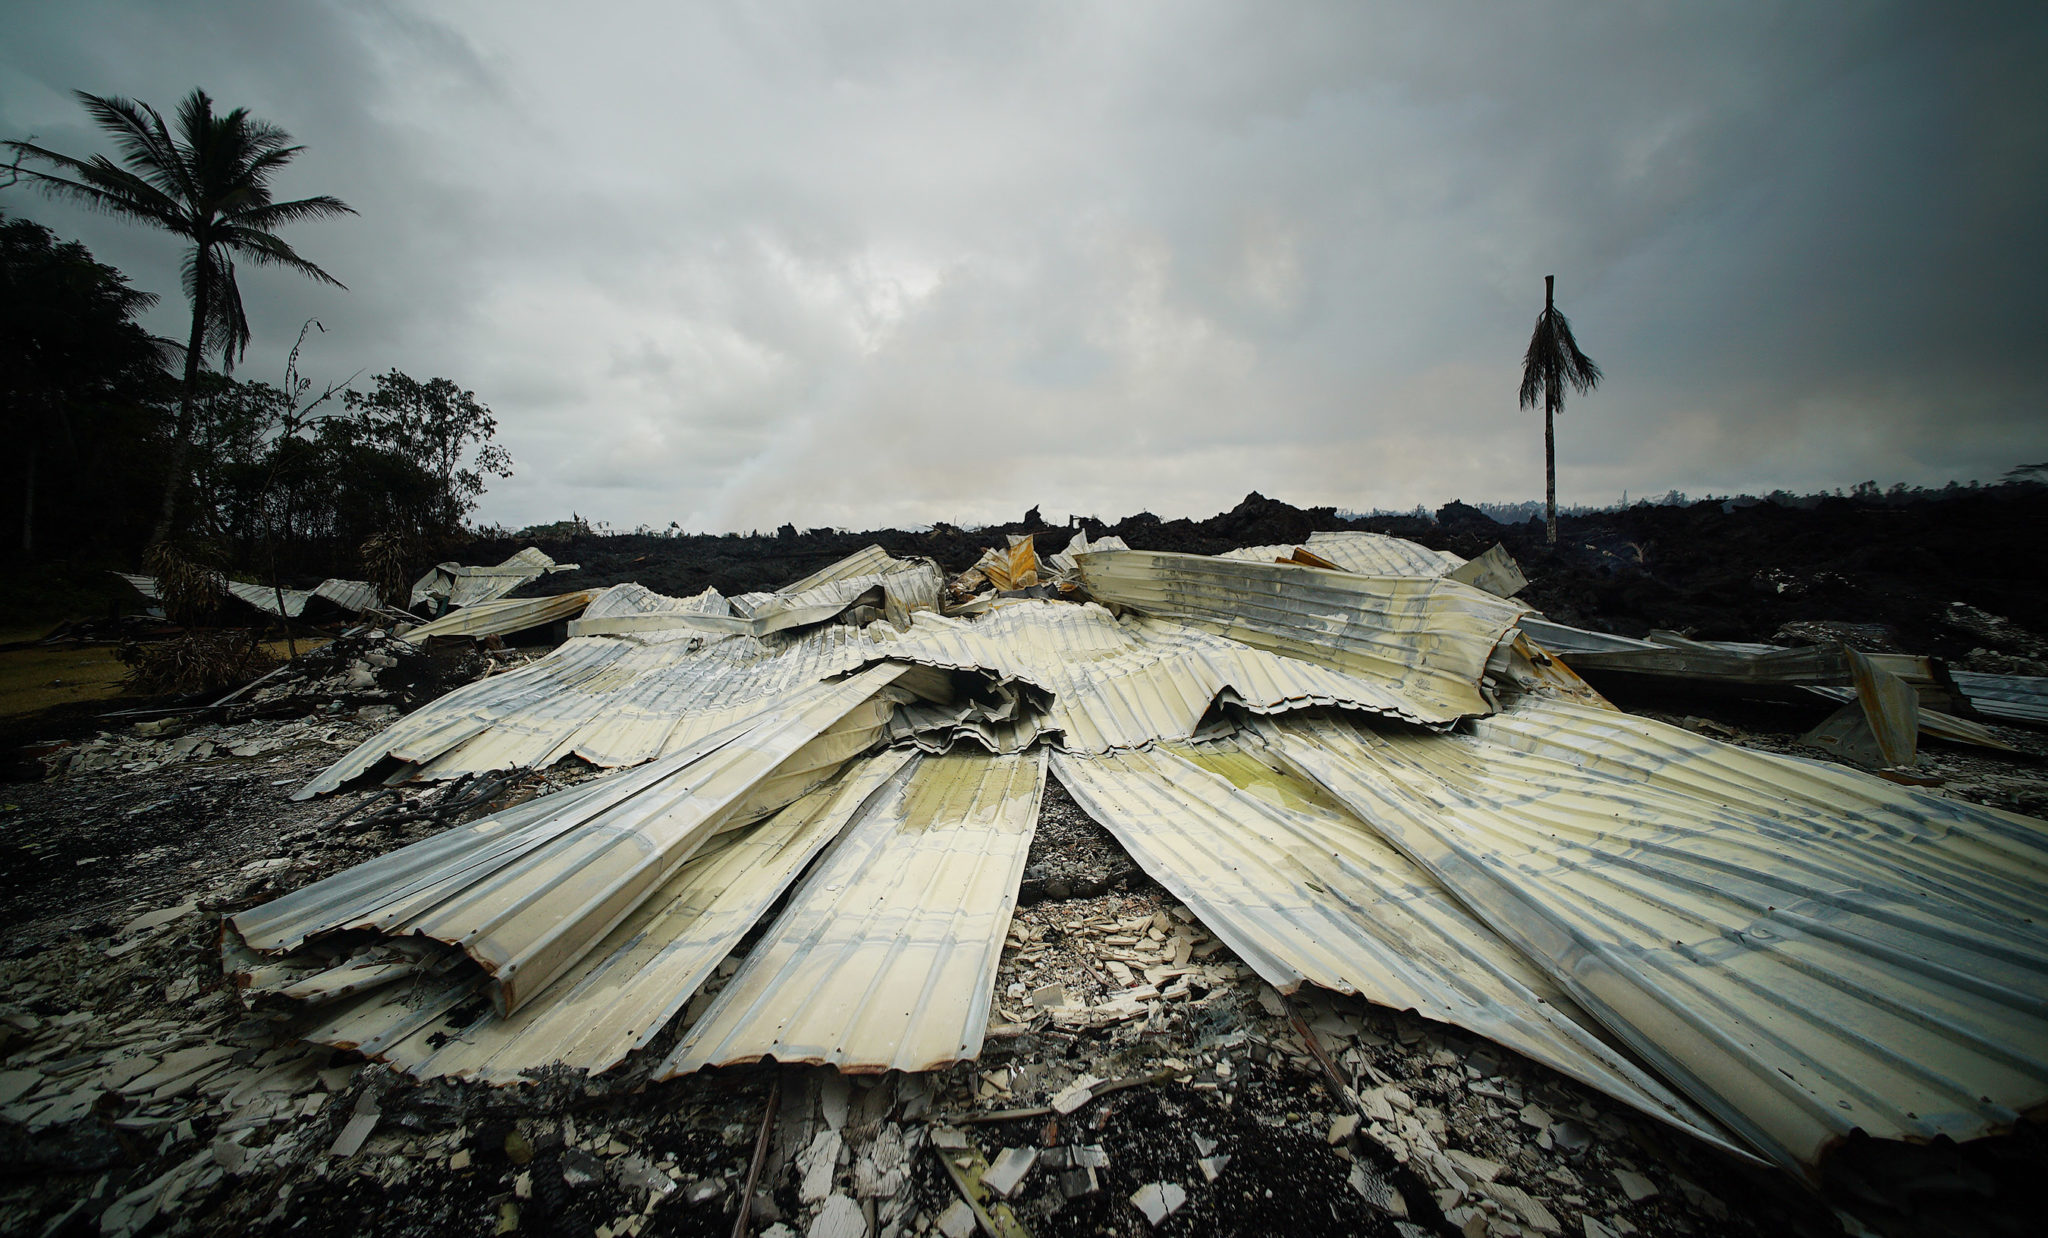 <p><strong>GROUND ZERO:</strong> Aluminum roofing material lay on the foundation of a home that was engulfed by lava in the Leilani Estates neighborhood. / Cory Lum</p>